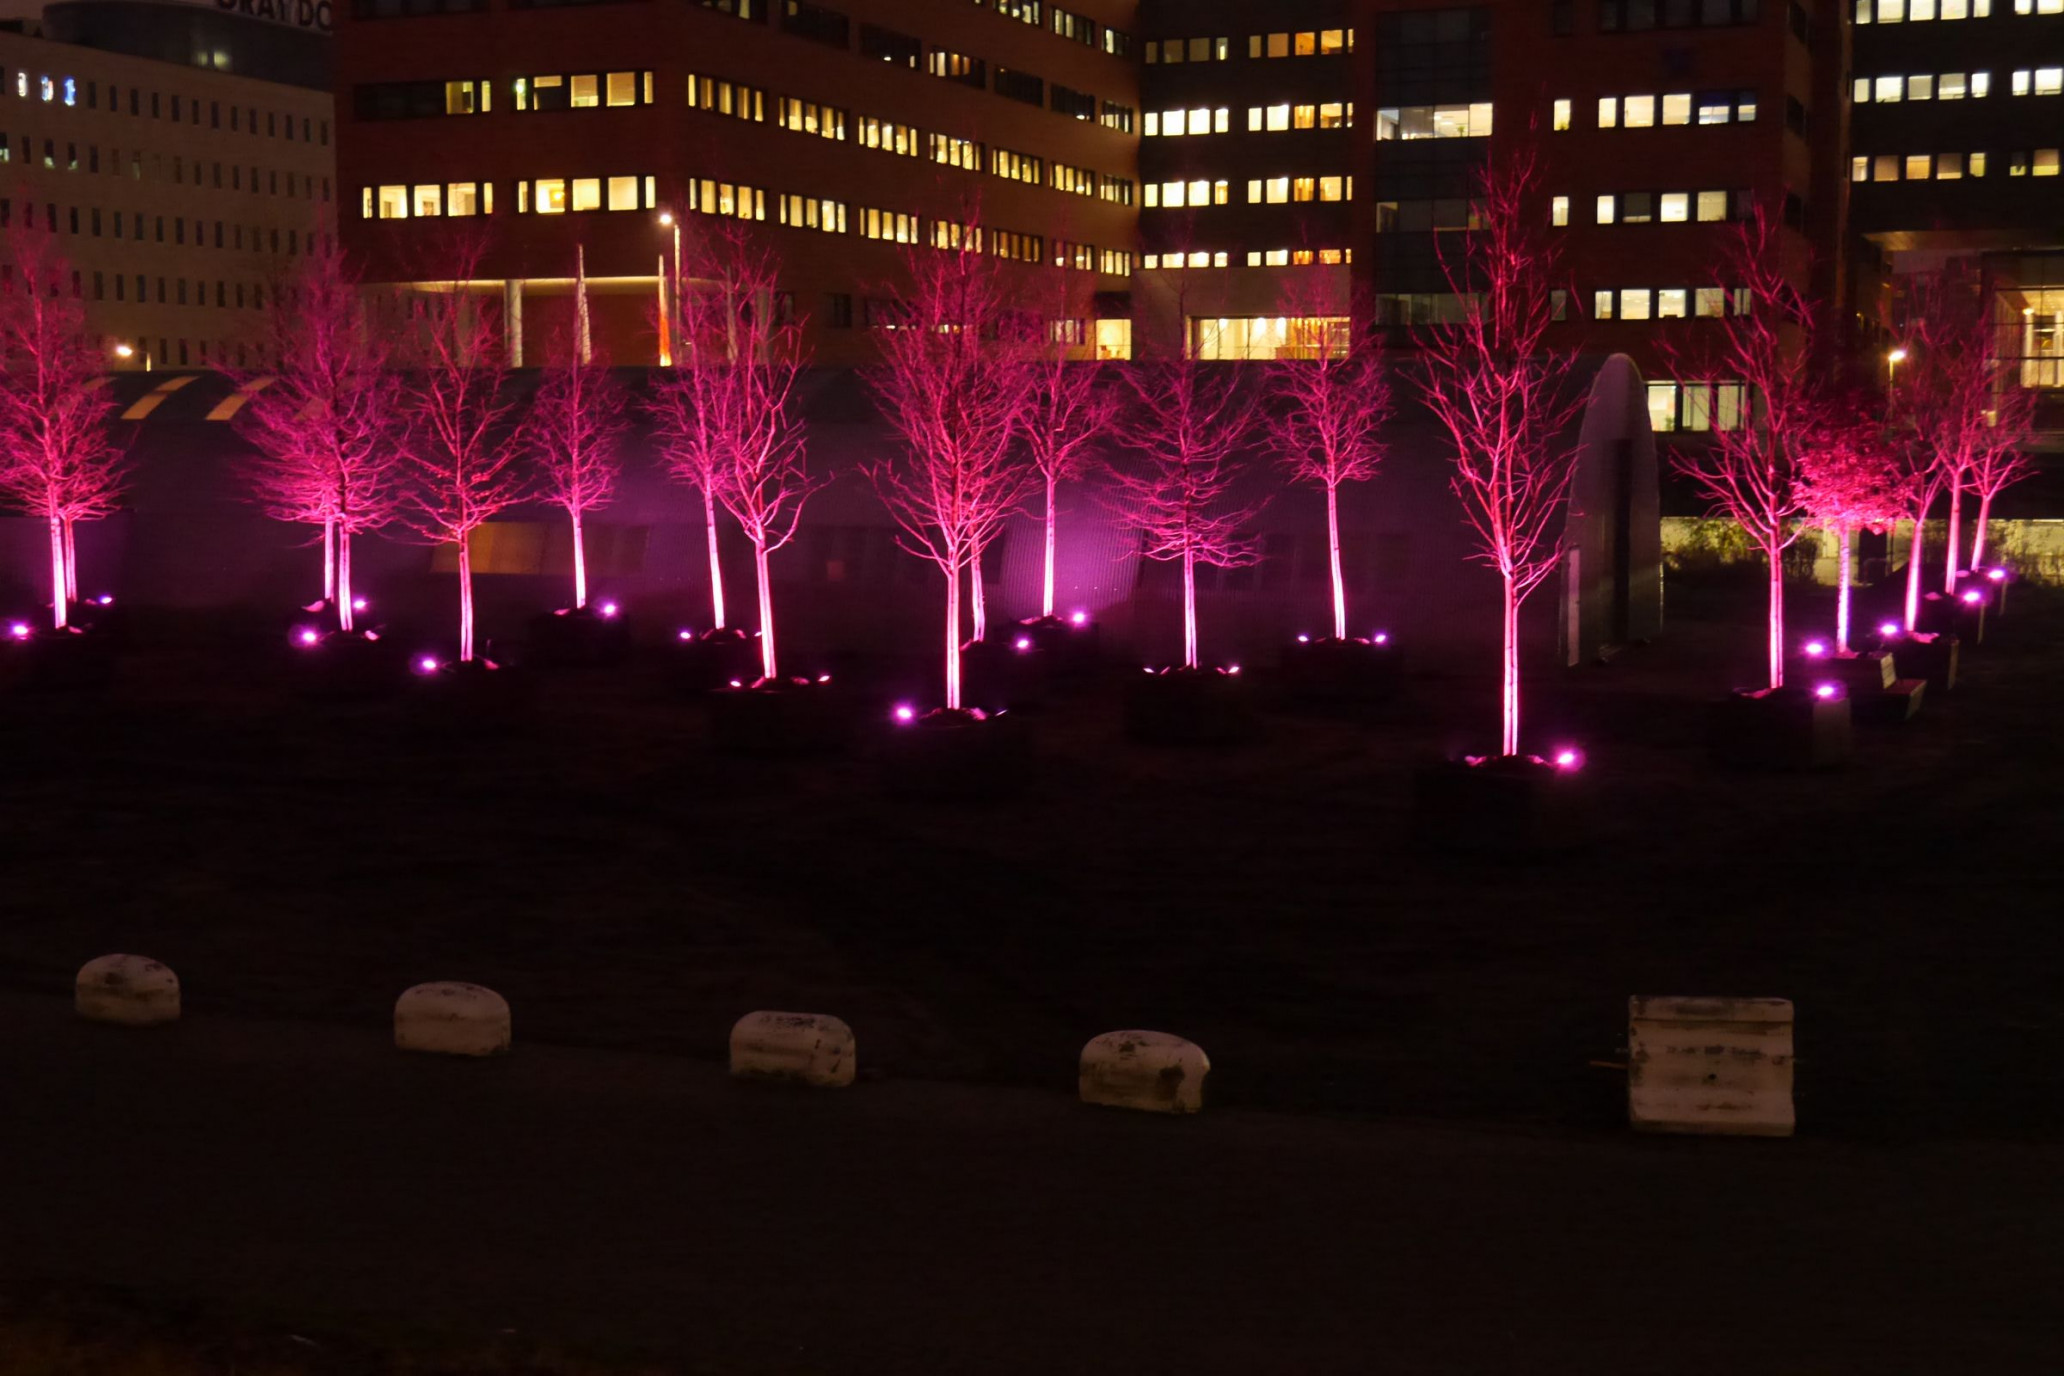 Amsterdam, NL: Project 'Luminous trees'